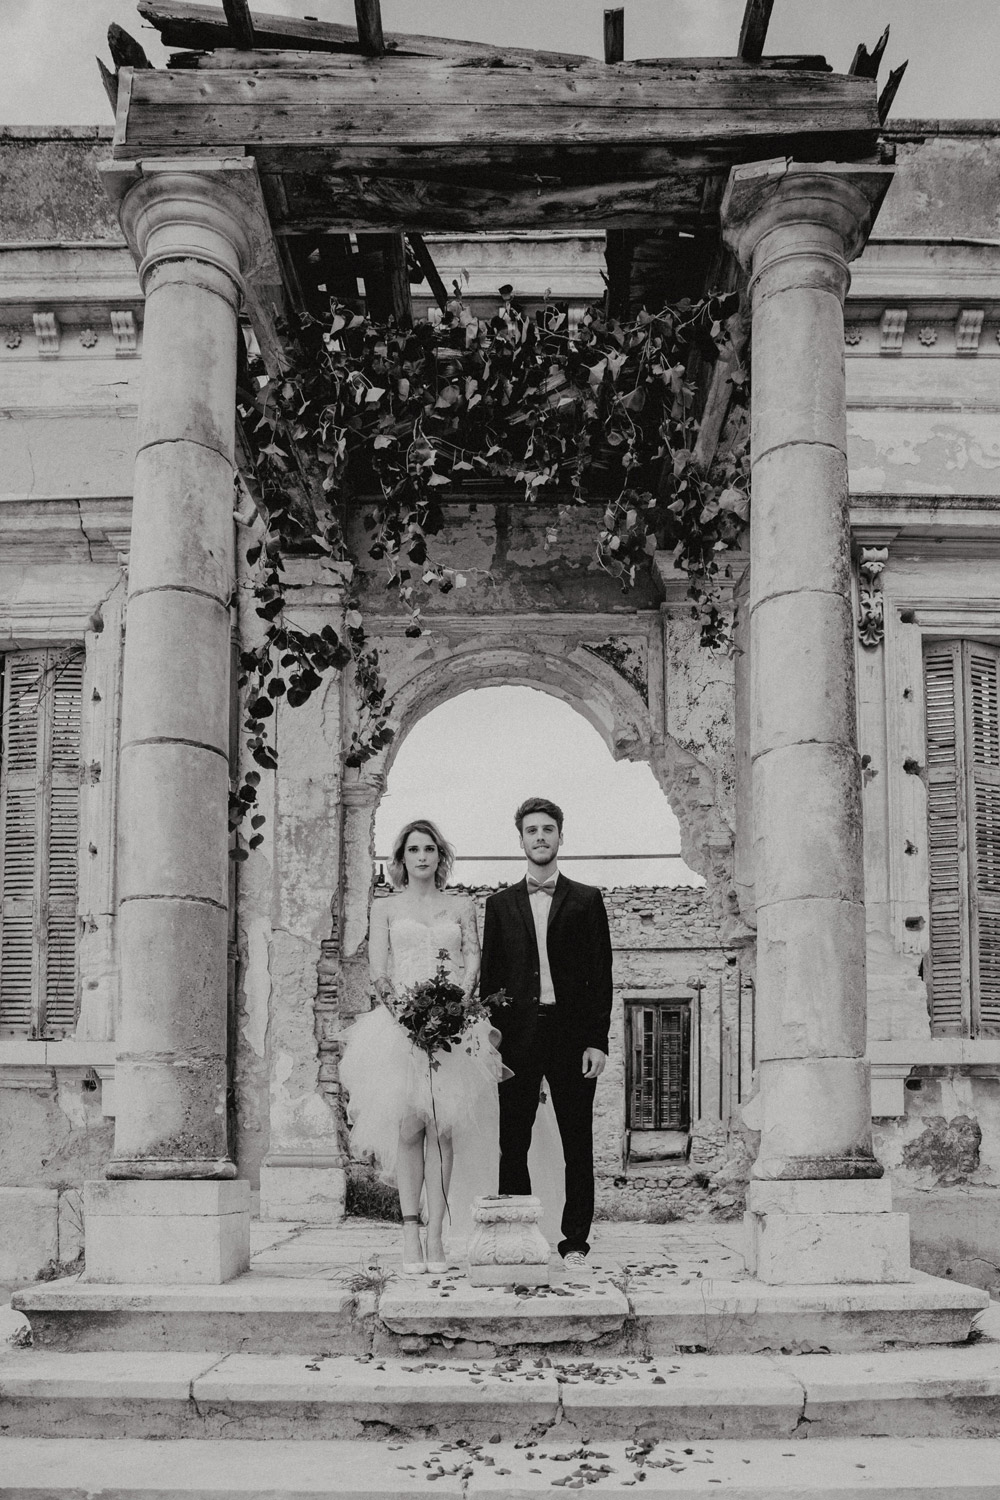 mariage-chateau-roquefeuille-pourrieres-714-2